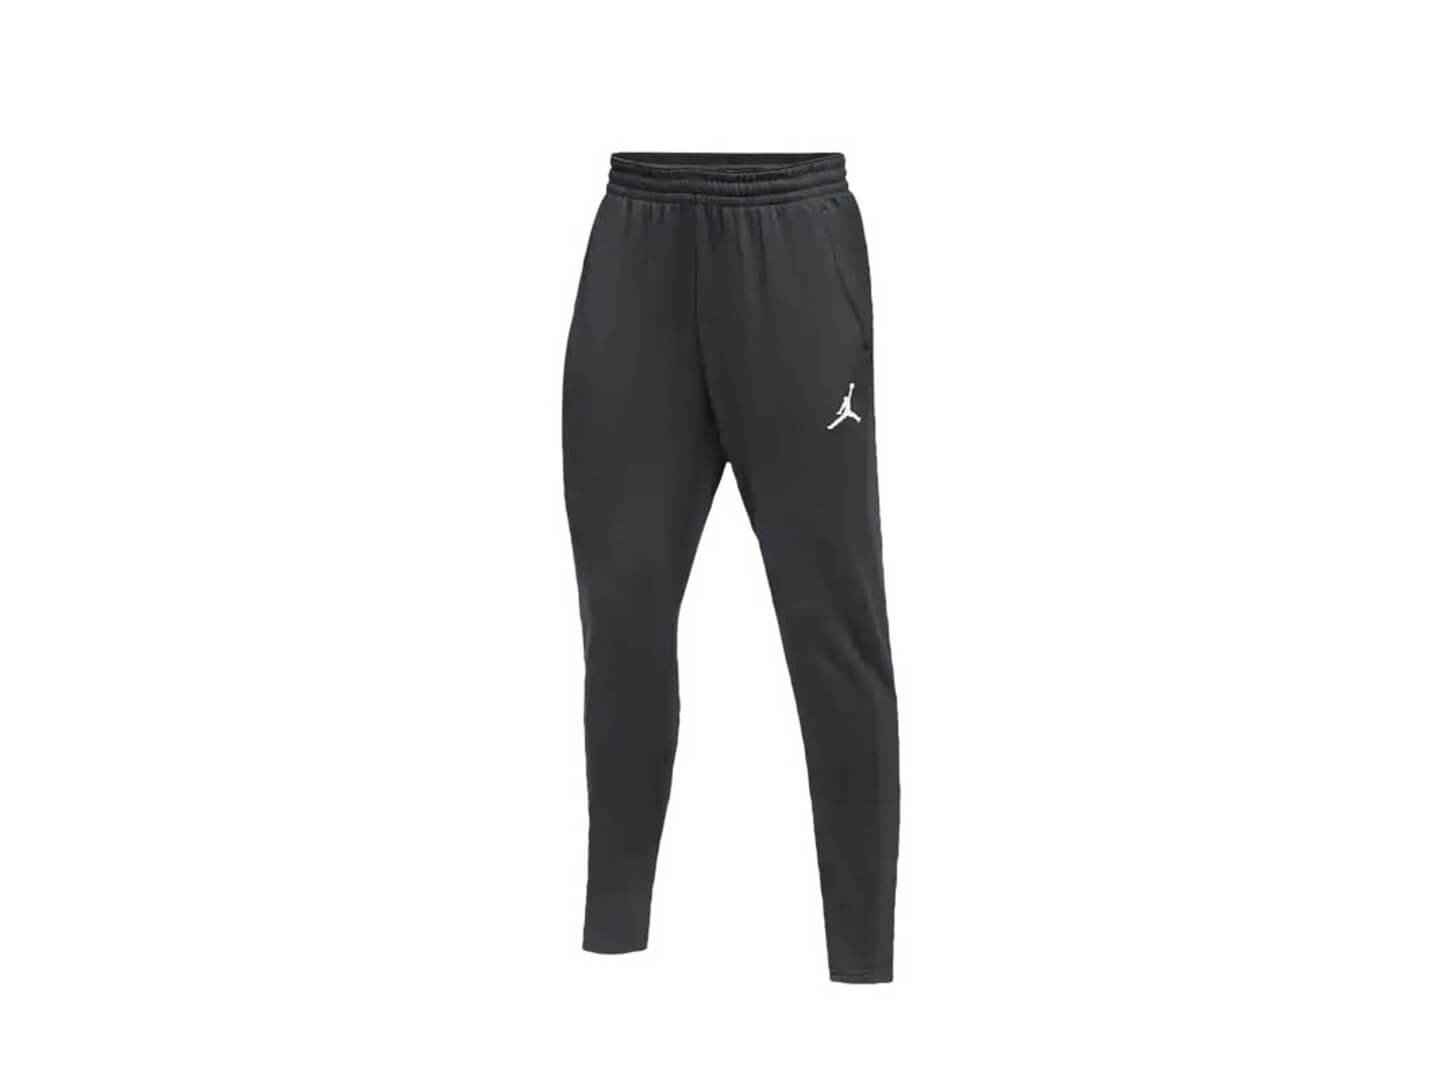 Штаны Jordan 360 Fleece Pants / dark grey